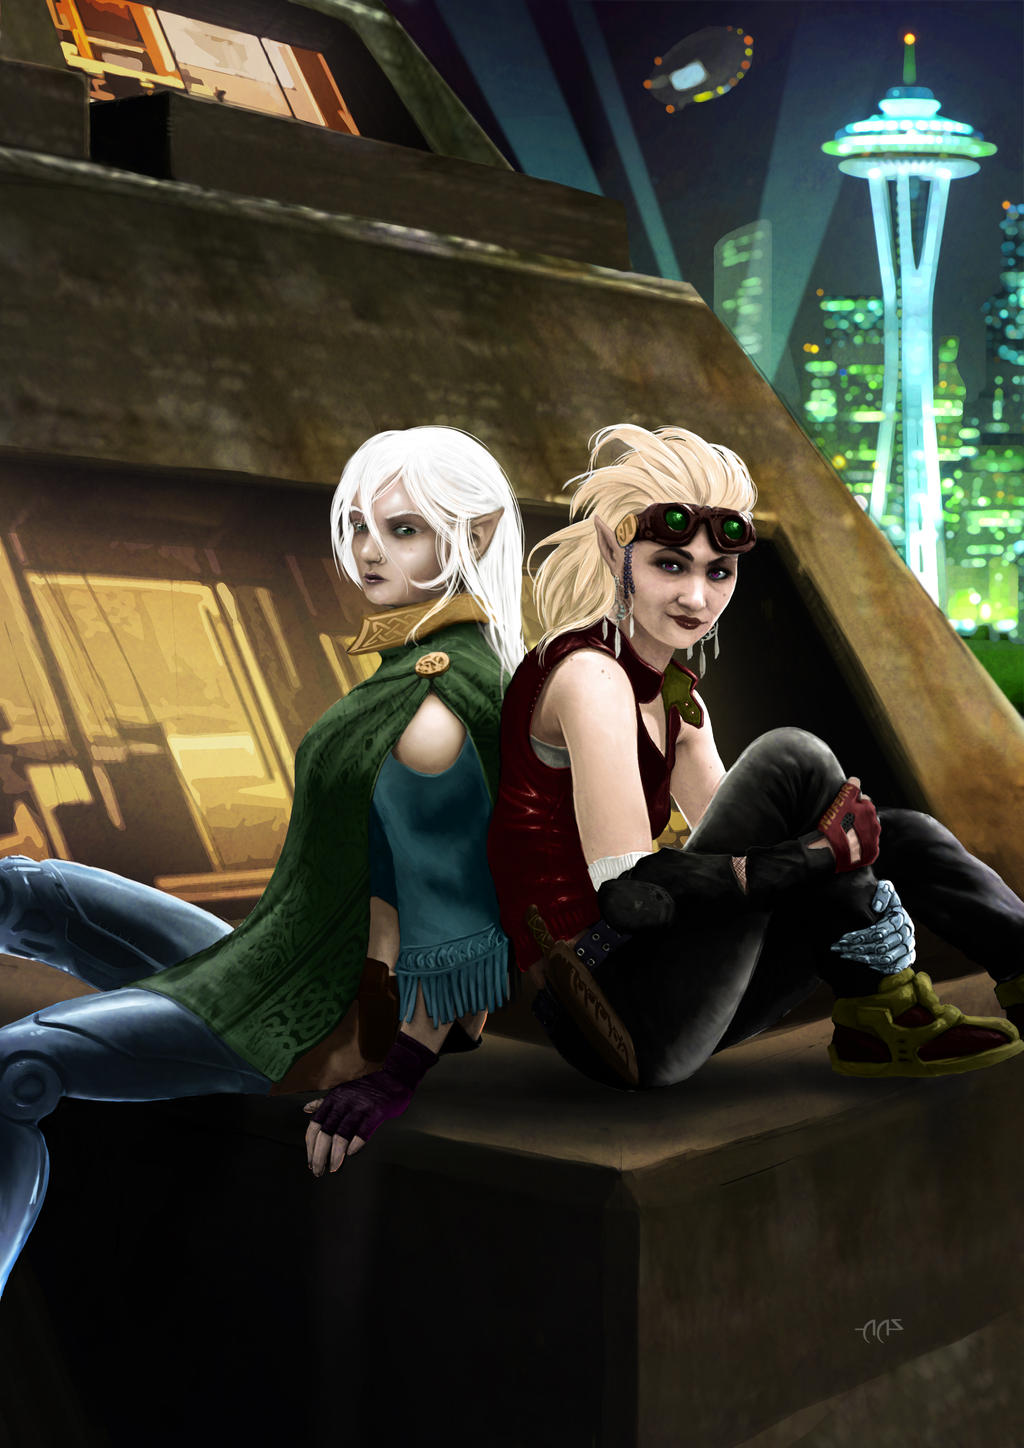 Shadowrun Character Commission Artwork by raben-aas